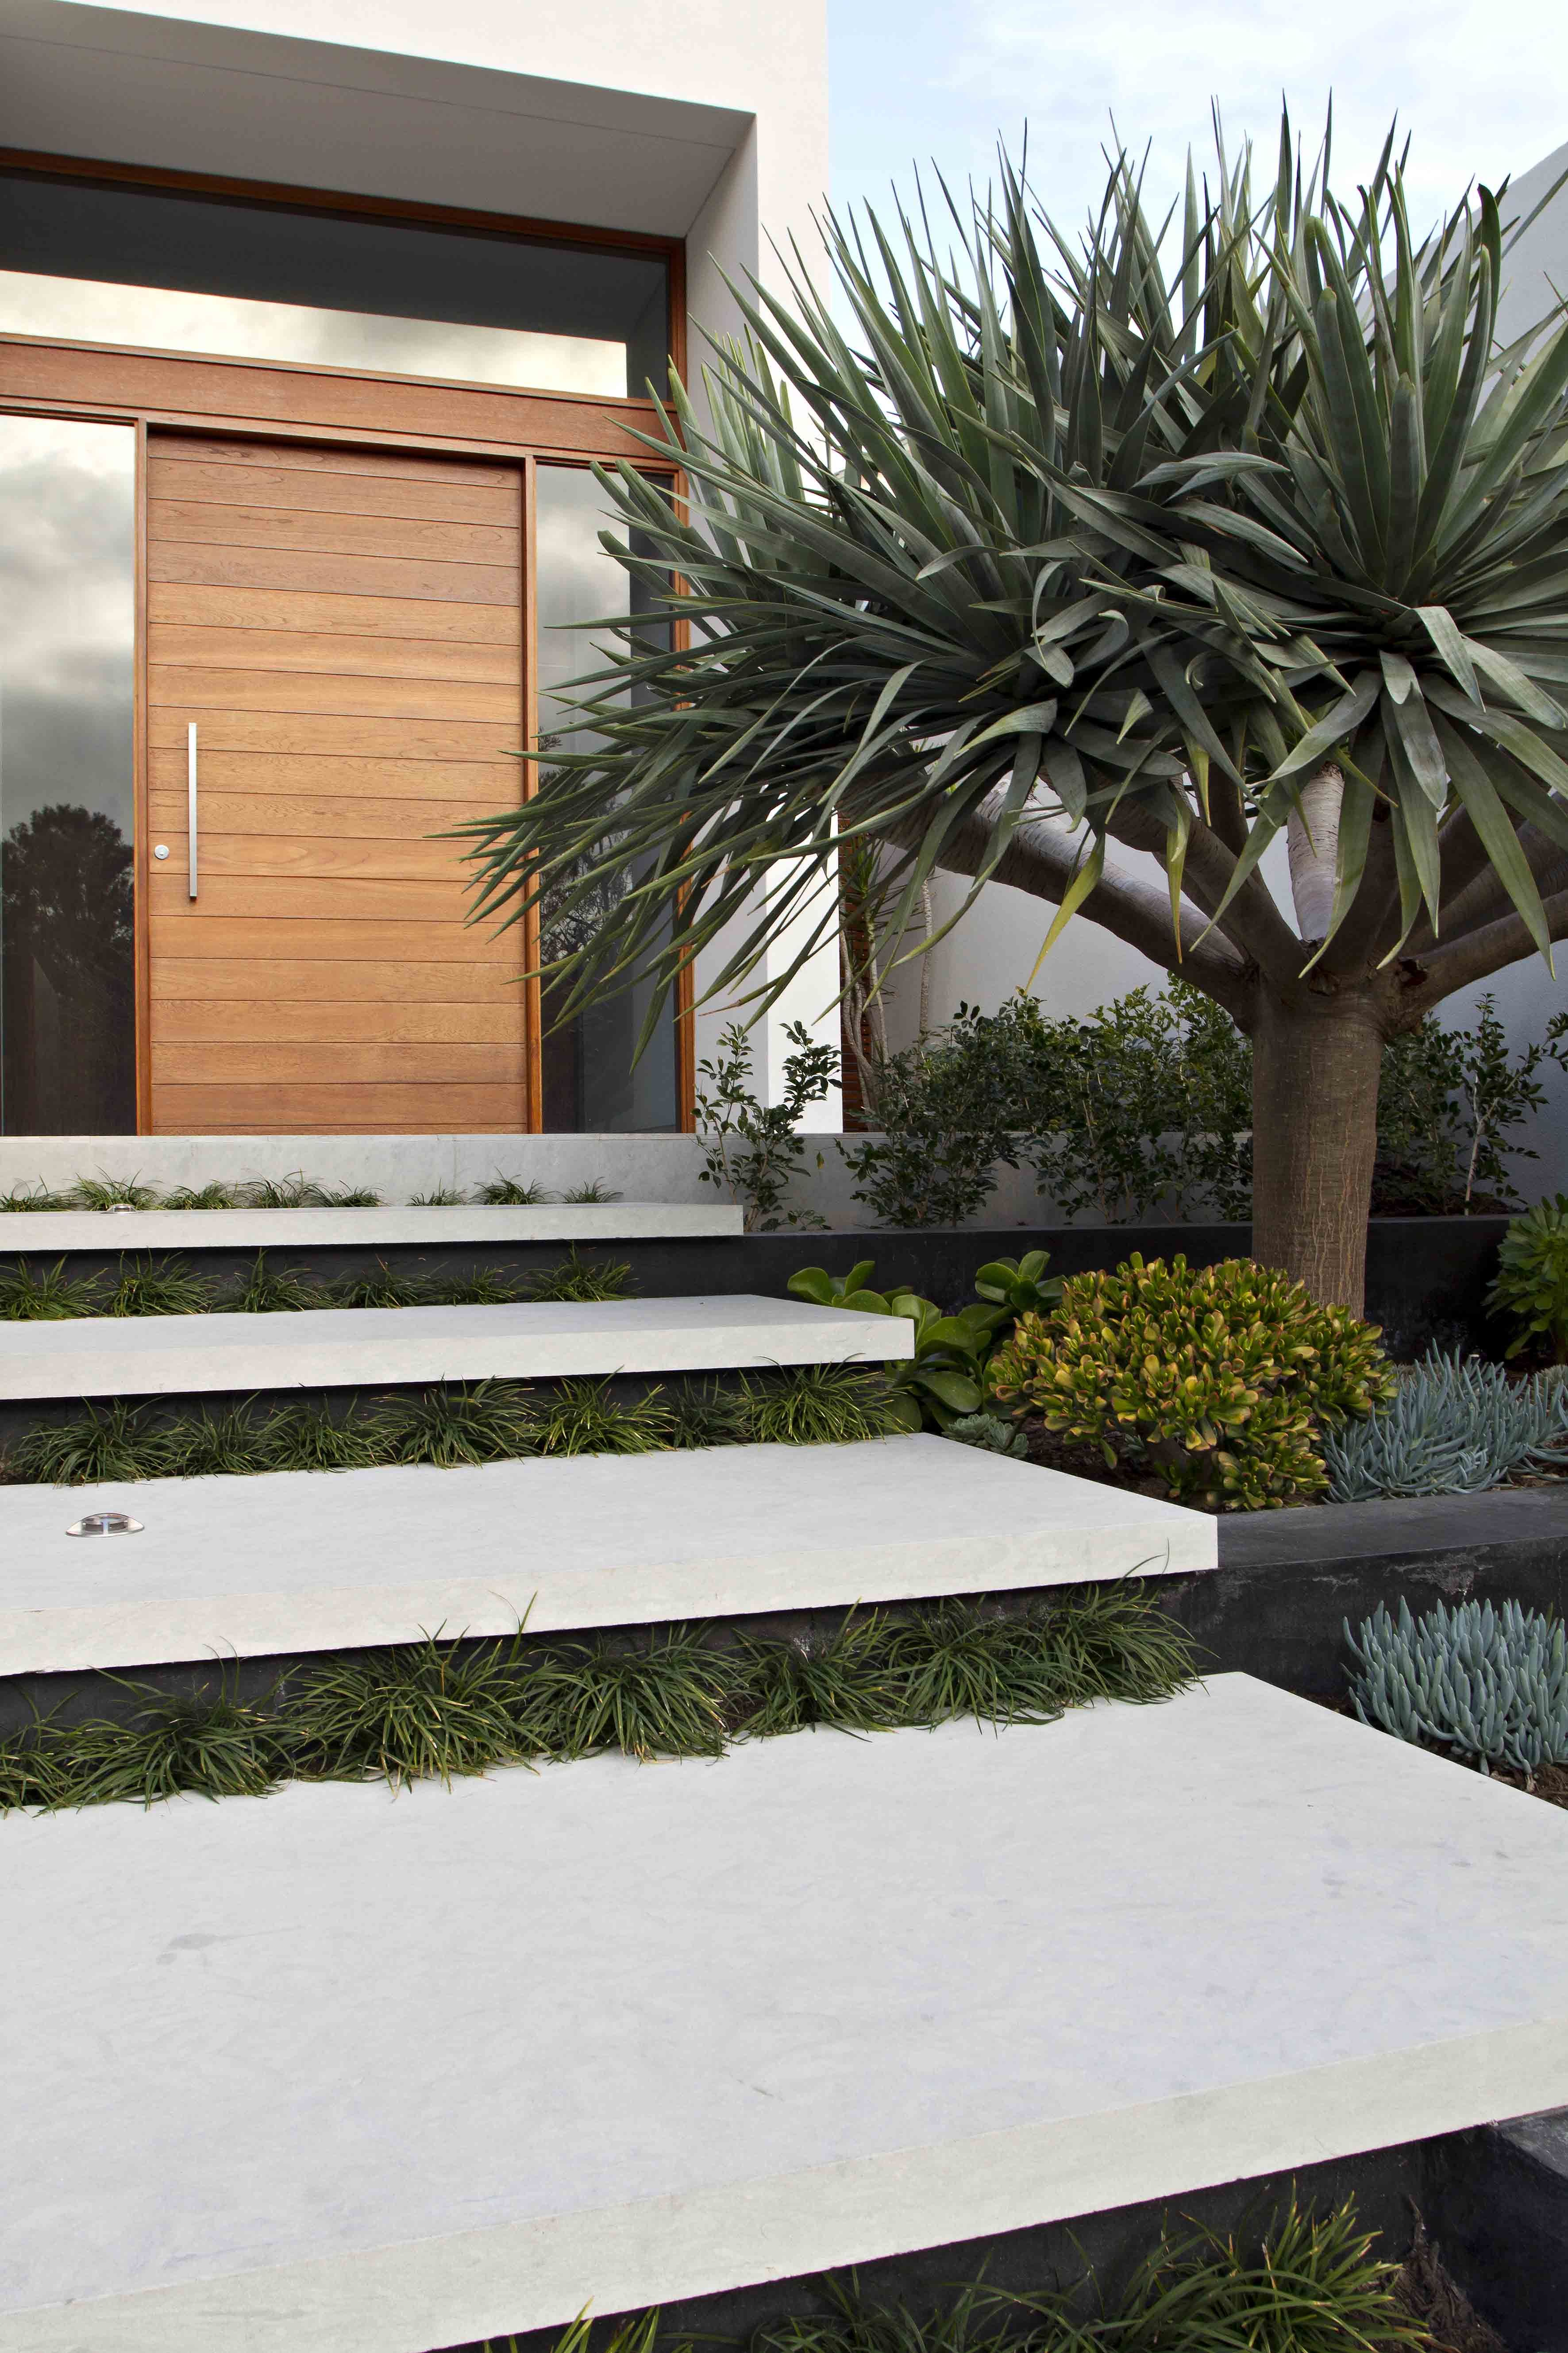 Dragon Tree Entrance Steps House Designs Exterior Front Door | Home Entrance Steps Design | Exterior | Sophisticated | Angled | Bungalow Entrance | Concrete